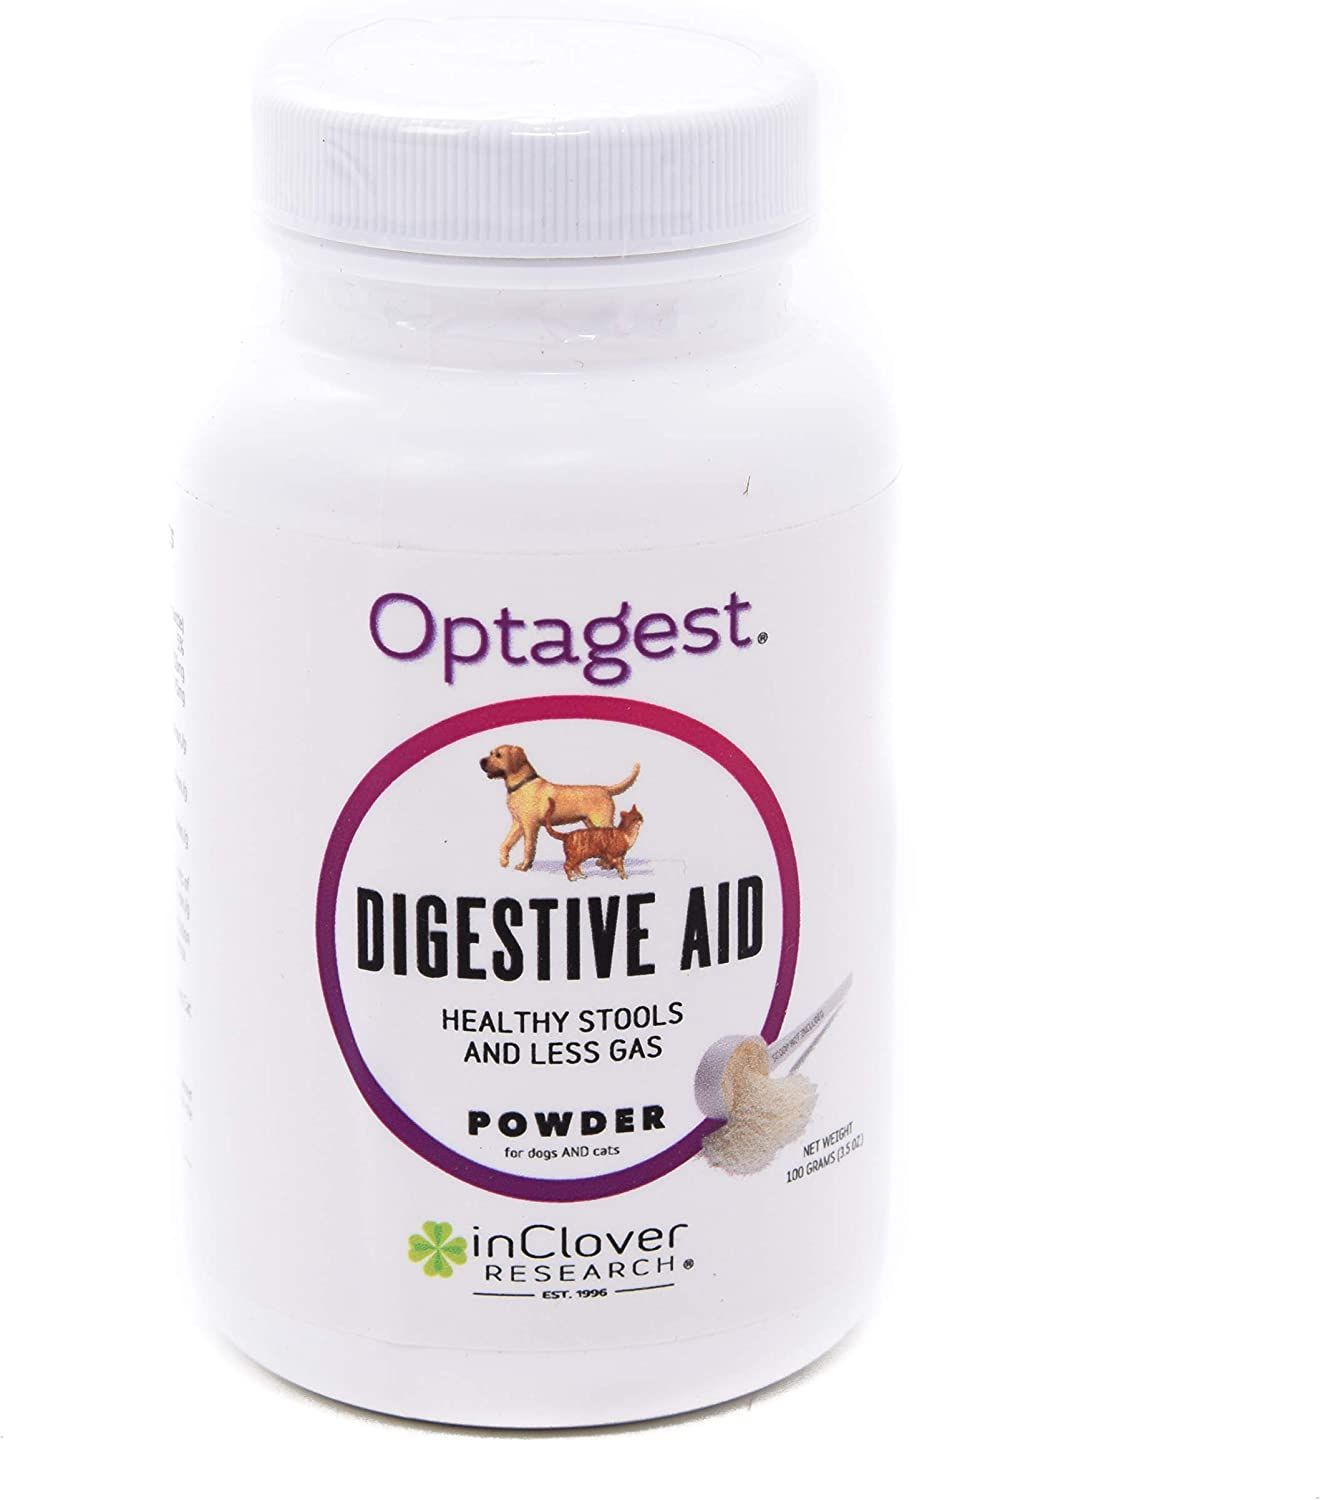 Optagest by InClover, Dog Digestion Support, Organic Natural Prebiotic Daily Pet Supplement, Aids Dog Digestion, Supplements Dog GI Tract, Natural Plant Enzymes Help Dog Health, USDA NASC Certified